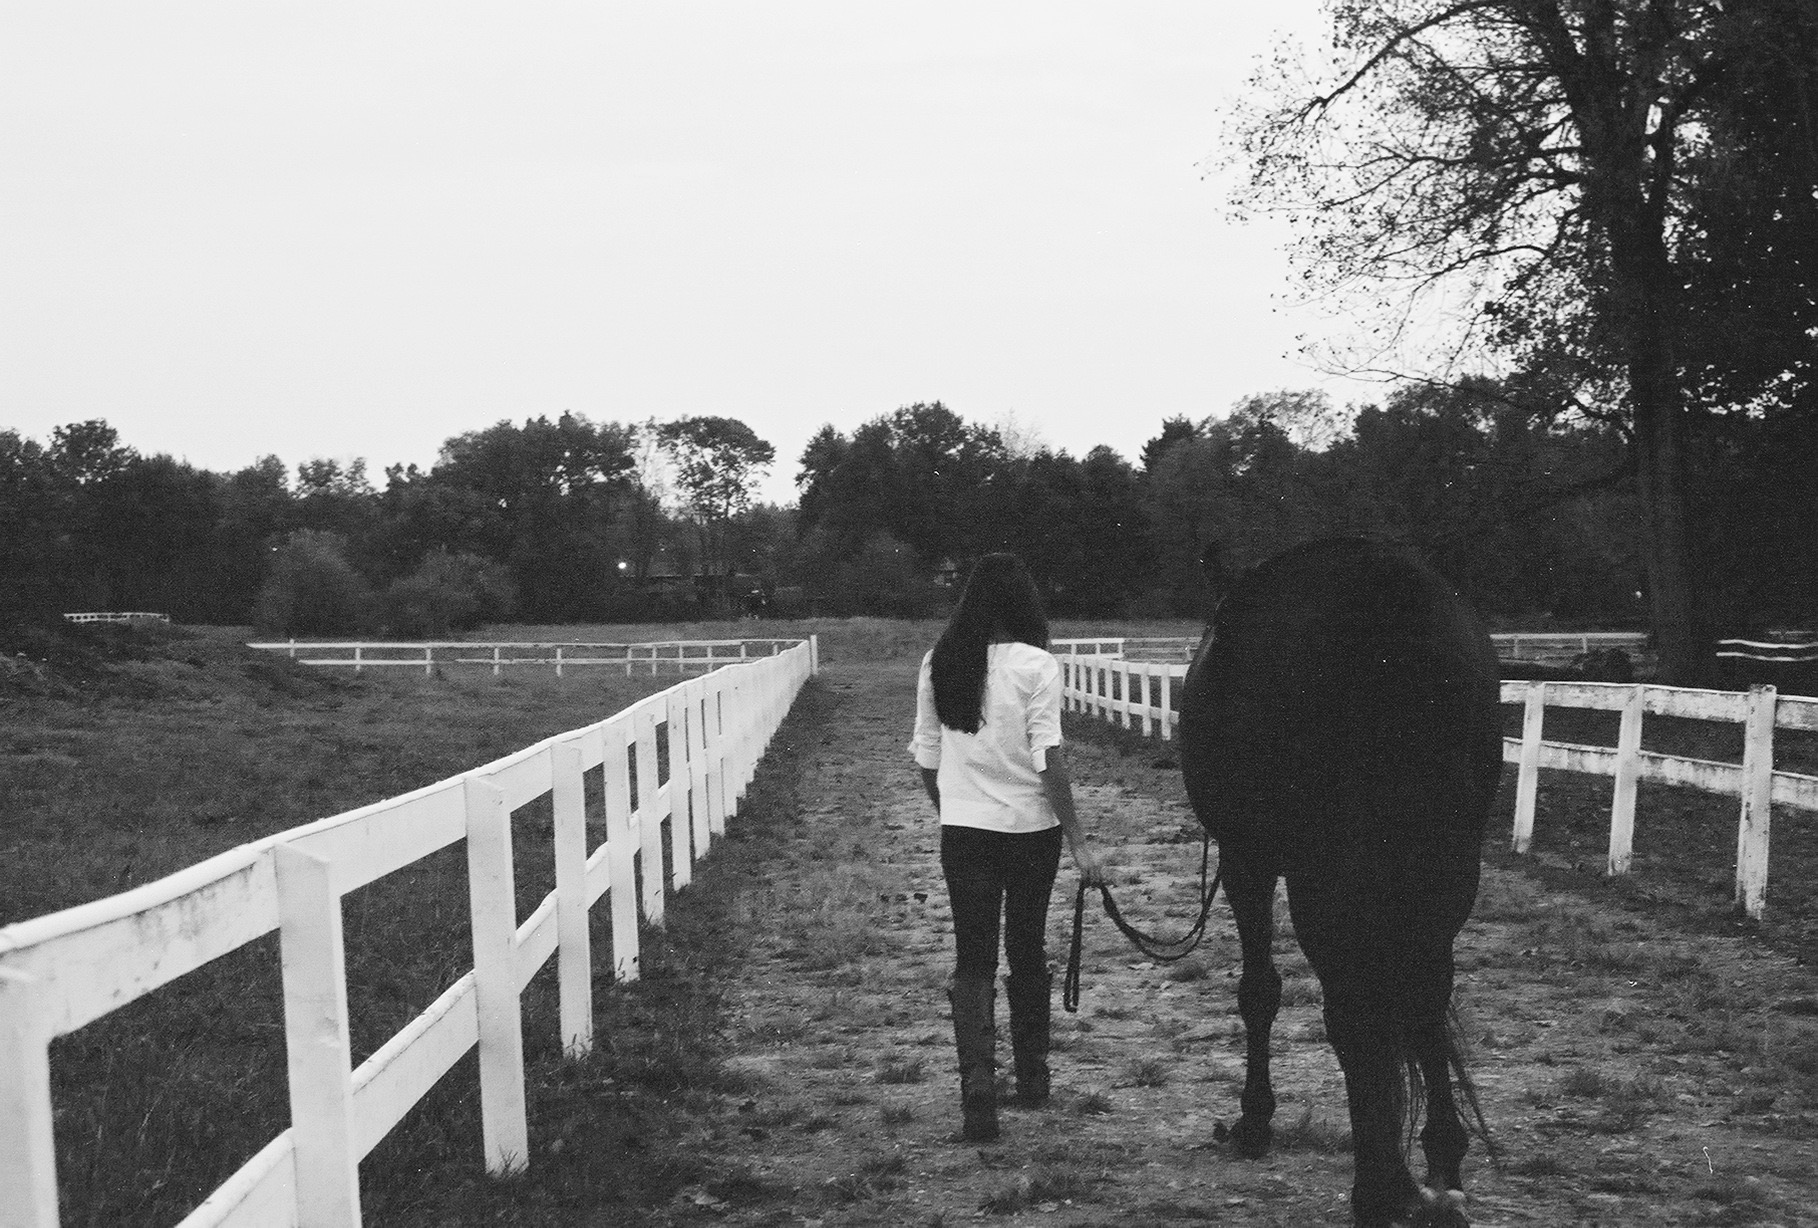 Julie's daughter, Madeline Bova, walking her horse Cameroon at the barn.